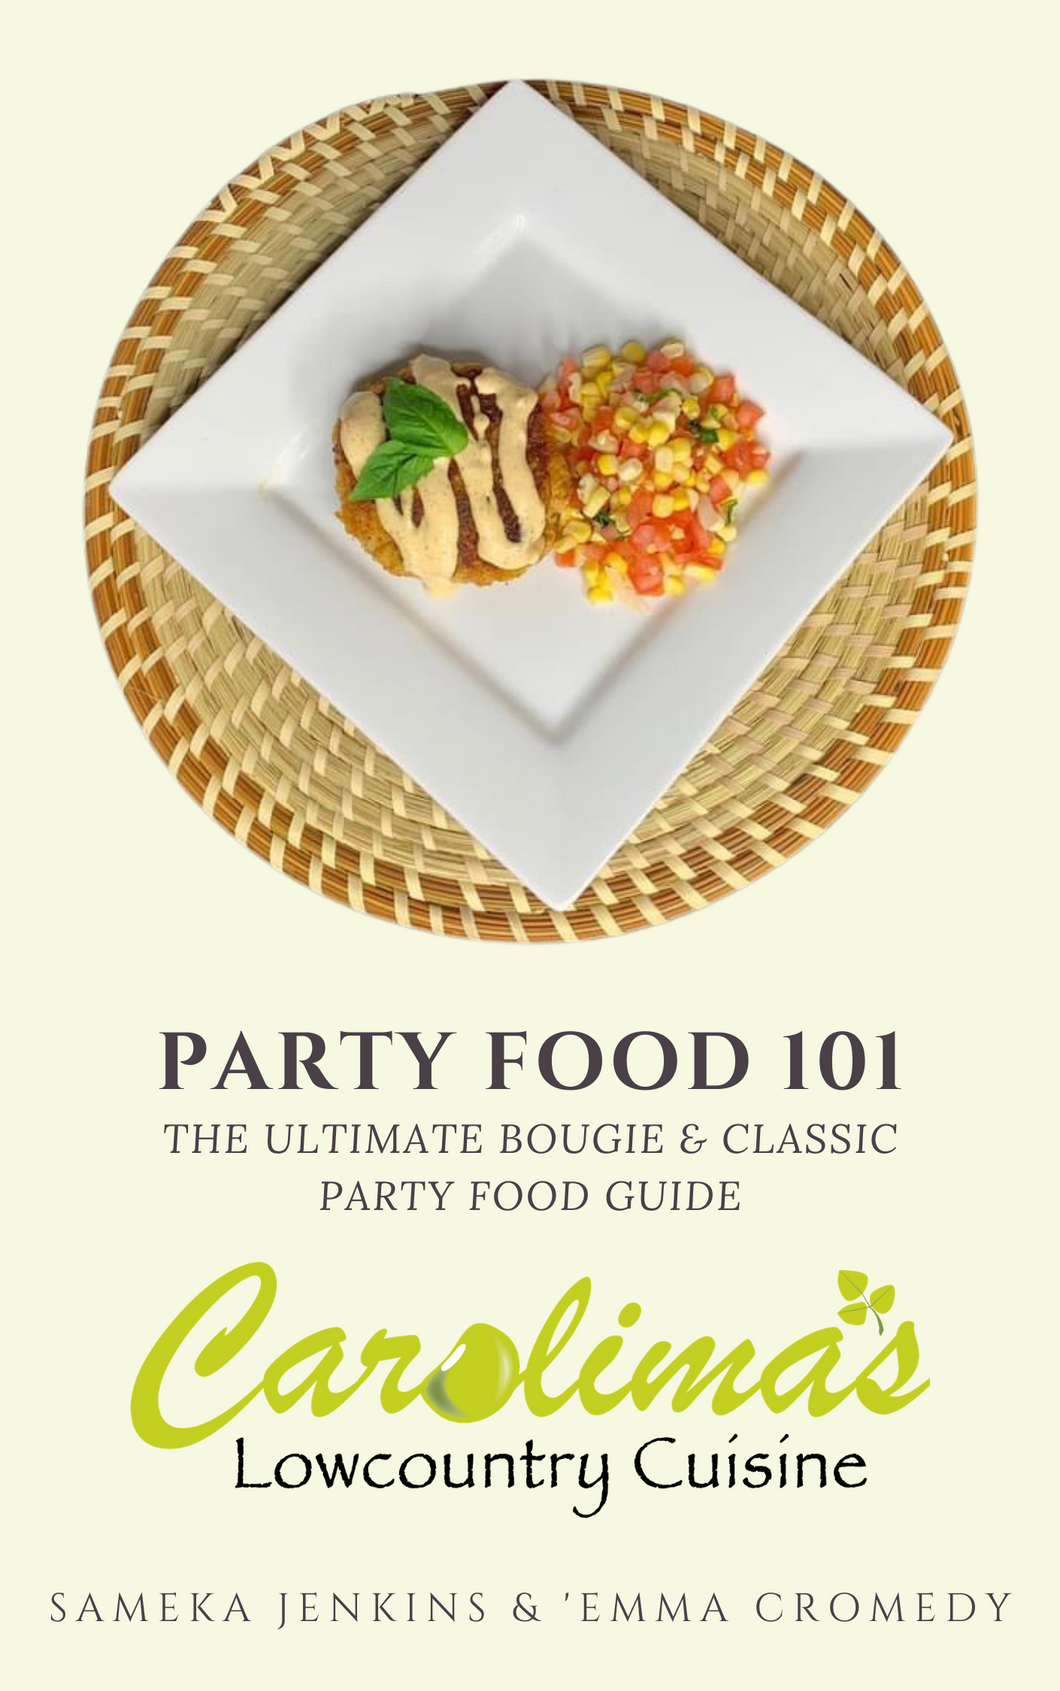 Party Food 101 E-book